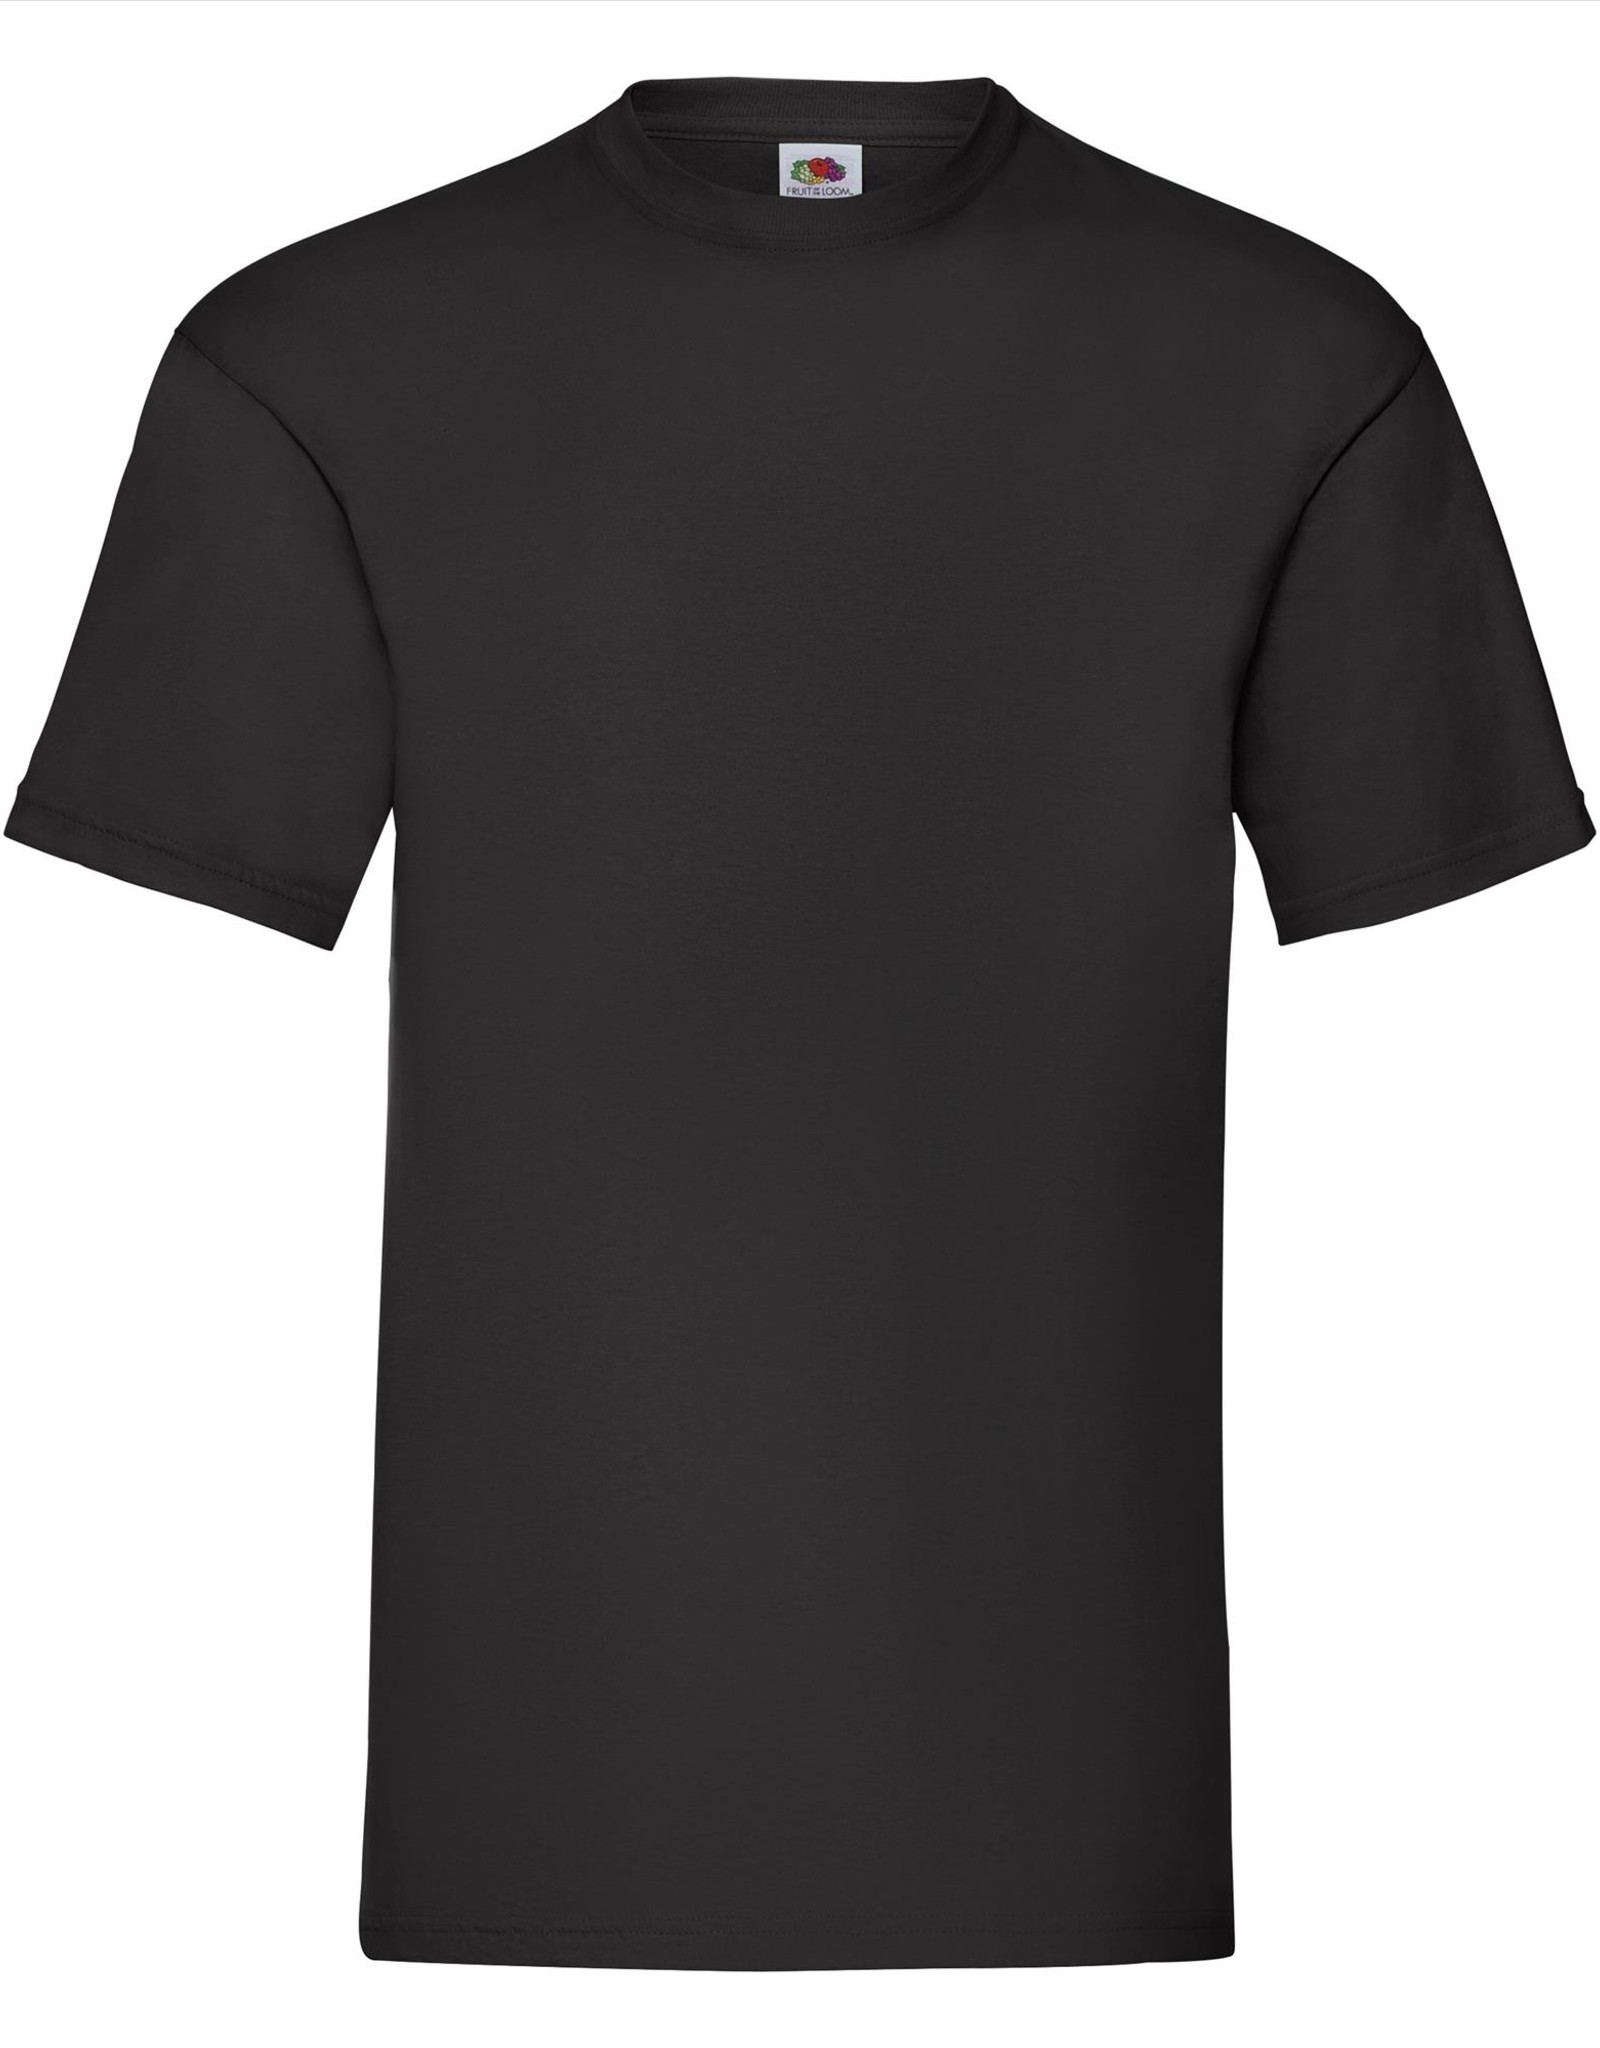 Fruit of the Loom T-SHIRT basic ronde hals 'Valueweight T' zwart